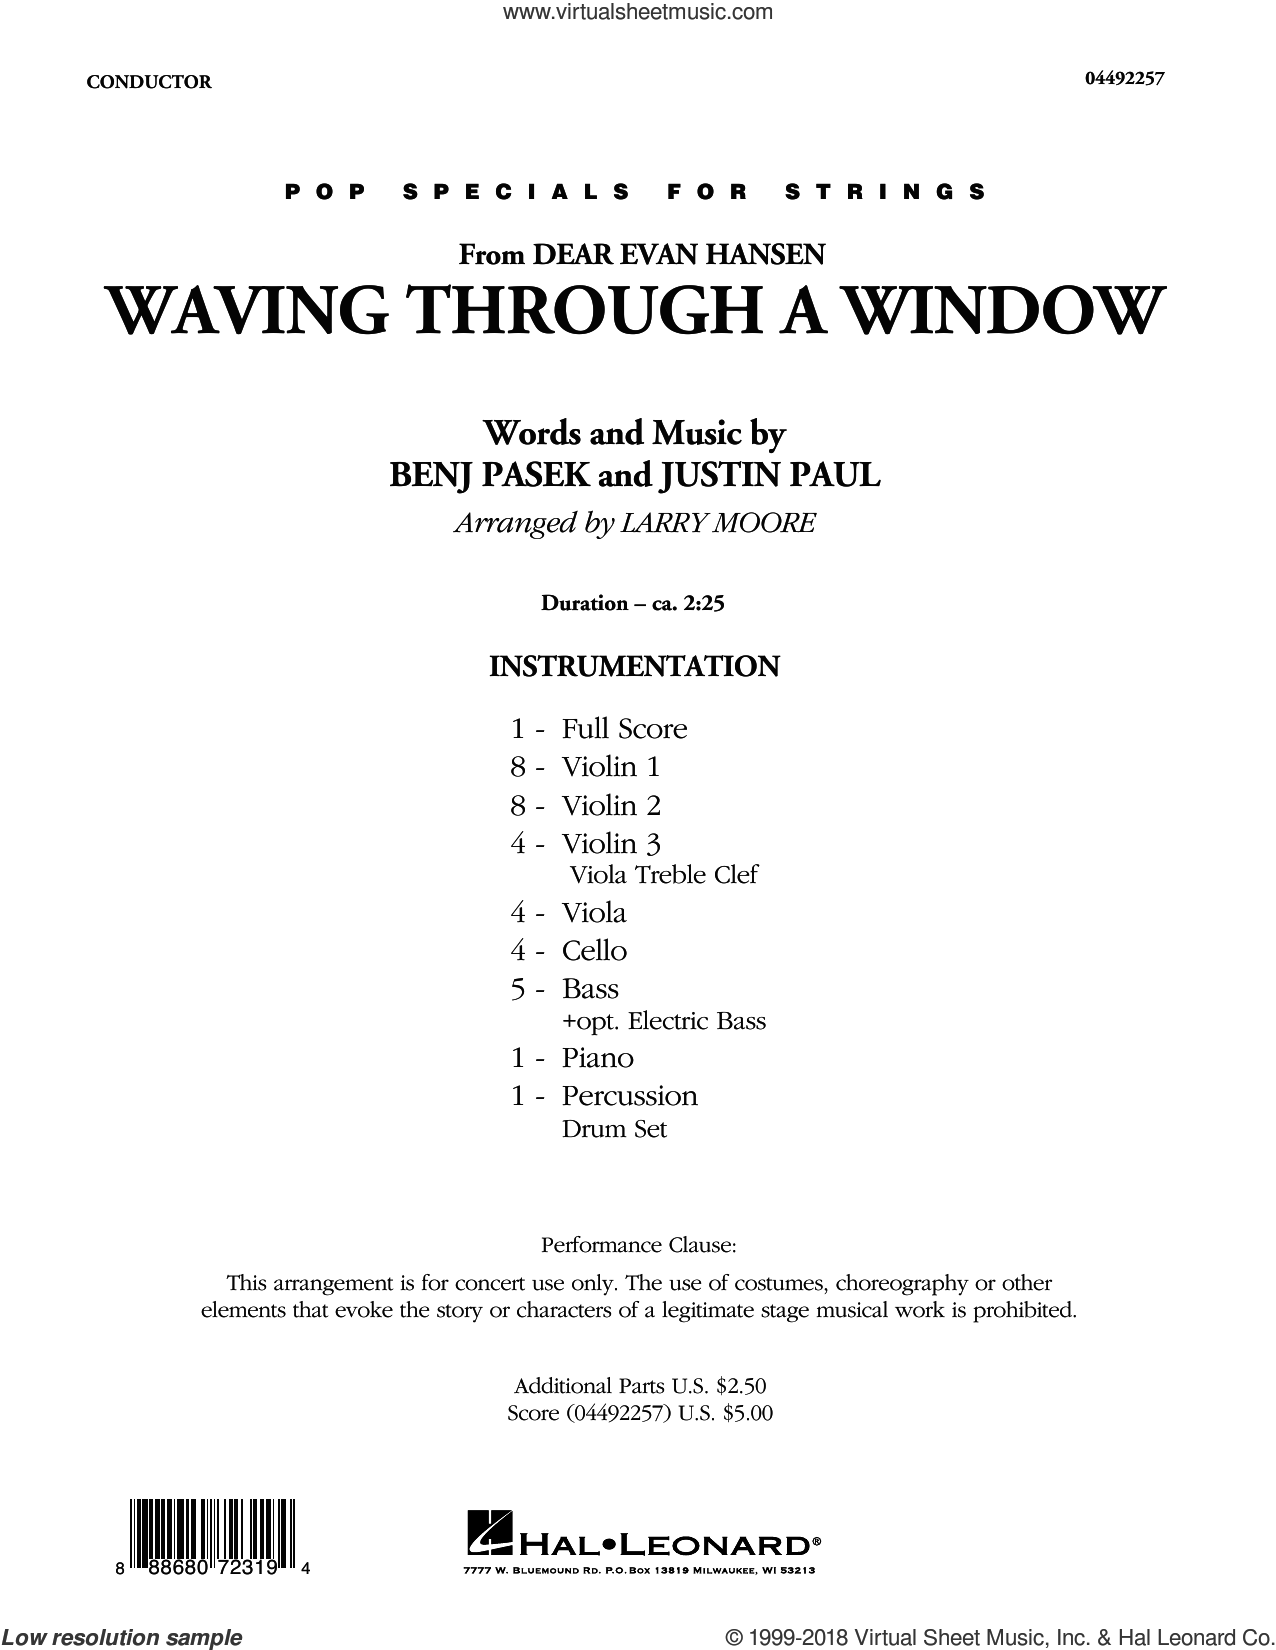 Waving Through a Window (from Dear Evan Hansen) (arr. Larry Moore) (COMPLETE) sheet music for orchestra by Benj Pasek, Justin Paul, Larry Moore and Pasek & Paul, intermediate skill level